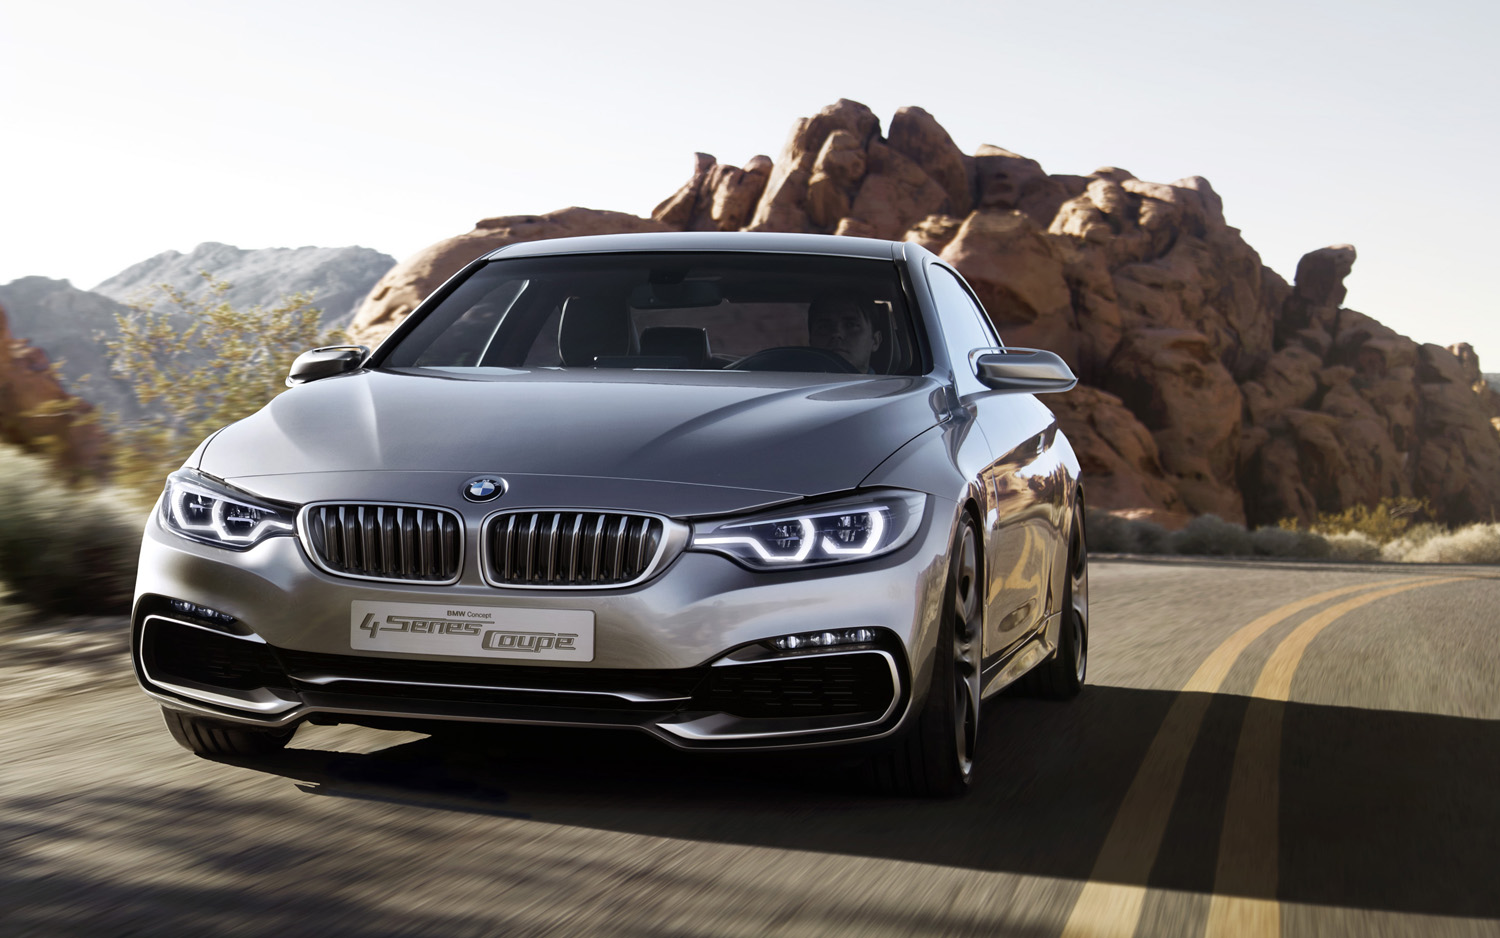 2018 BMW 4 Series Coupe Concept photo - 2